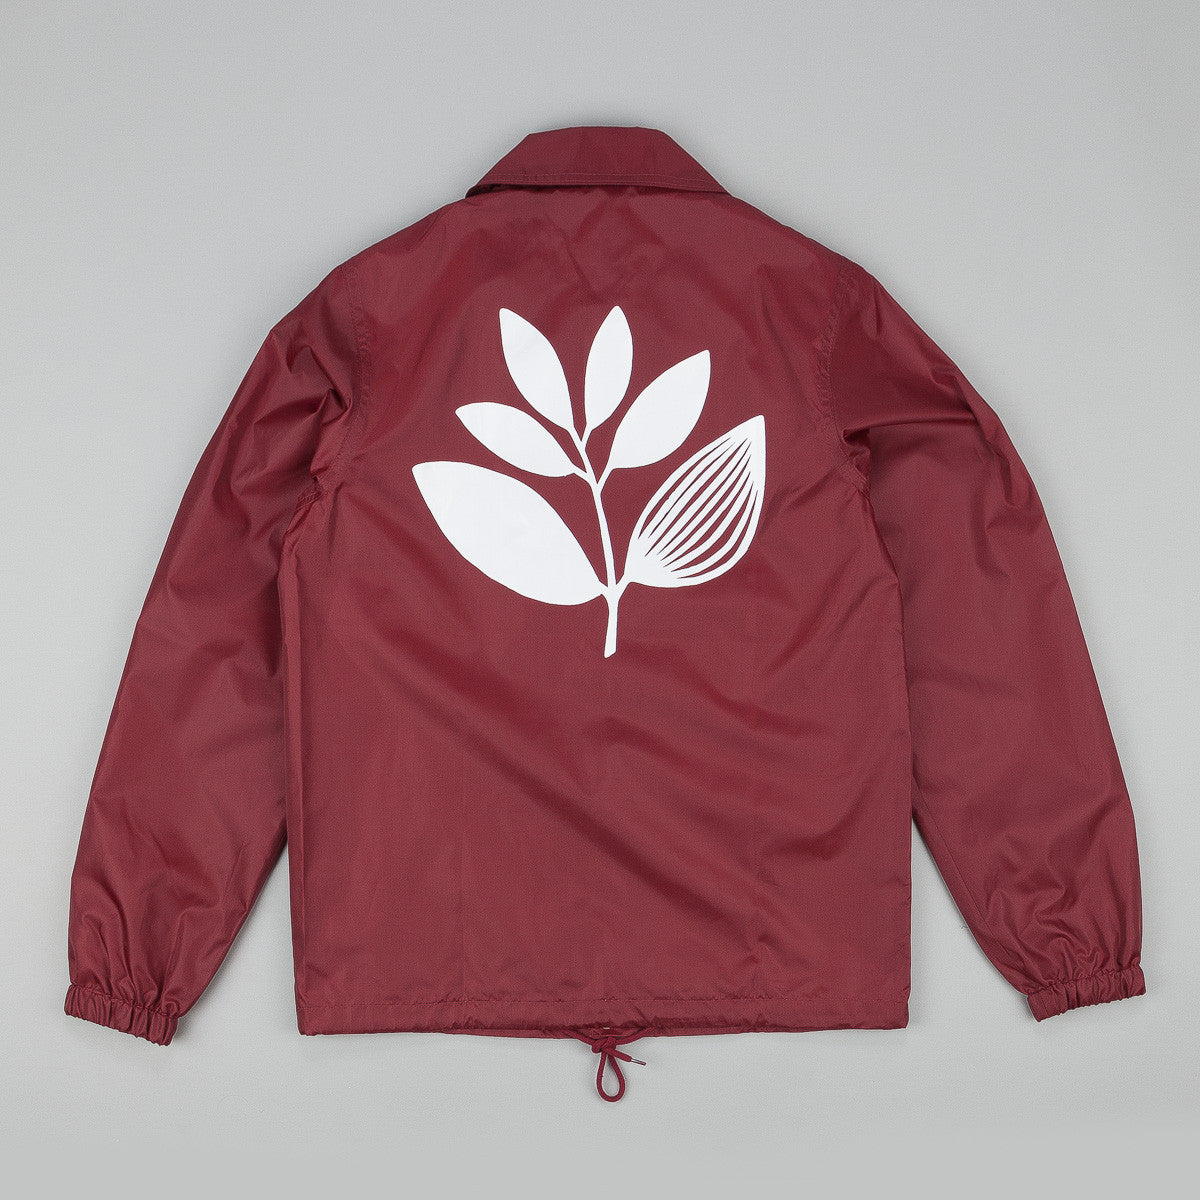 Magenta Classic Plant Windbreaker Jacket - Burgundy / White